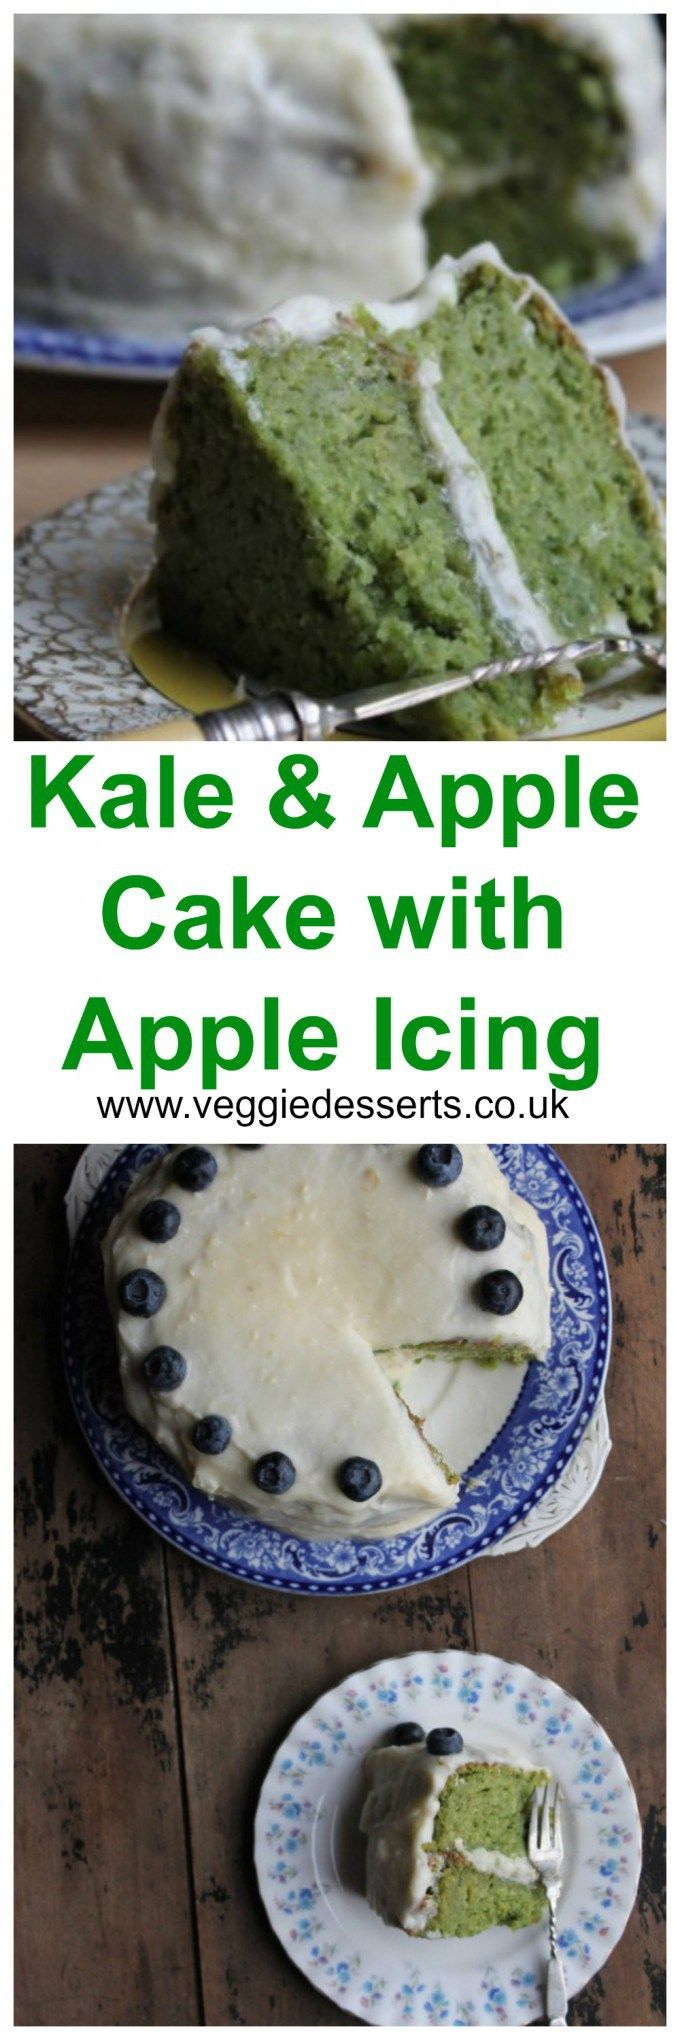 Kale and Apple Cake with Apple Icing | Veggie Desserts Blog by Kate Hackworthy  Vegetable cake? Kale cake? Yes! Trust, me, you can't even taste the kale, but it gives this cake such a bright green colour and leaves some goodness behind.